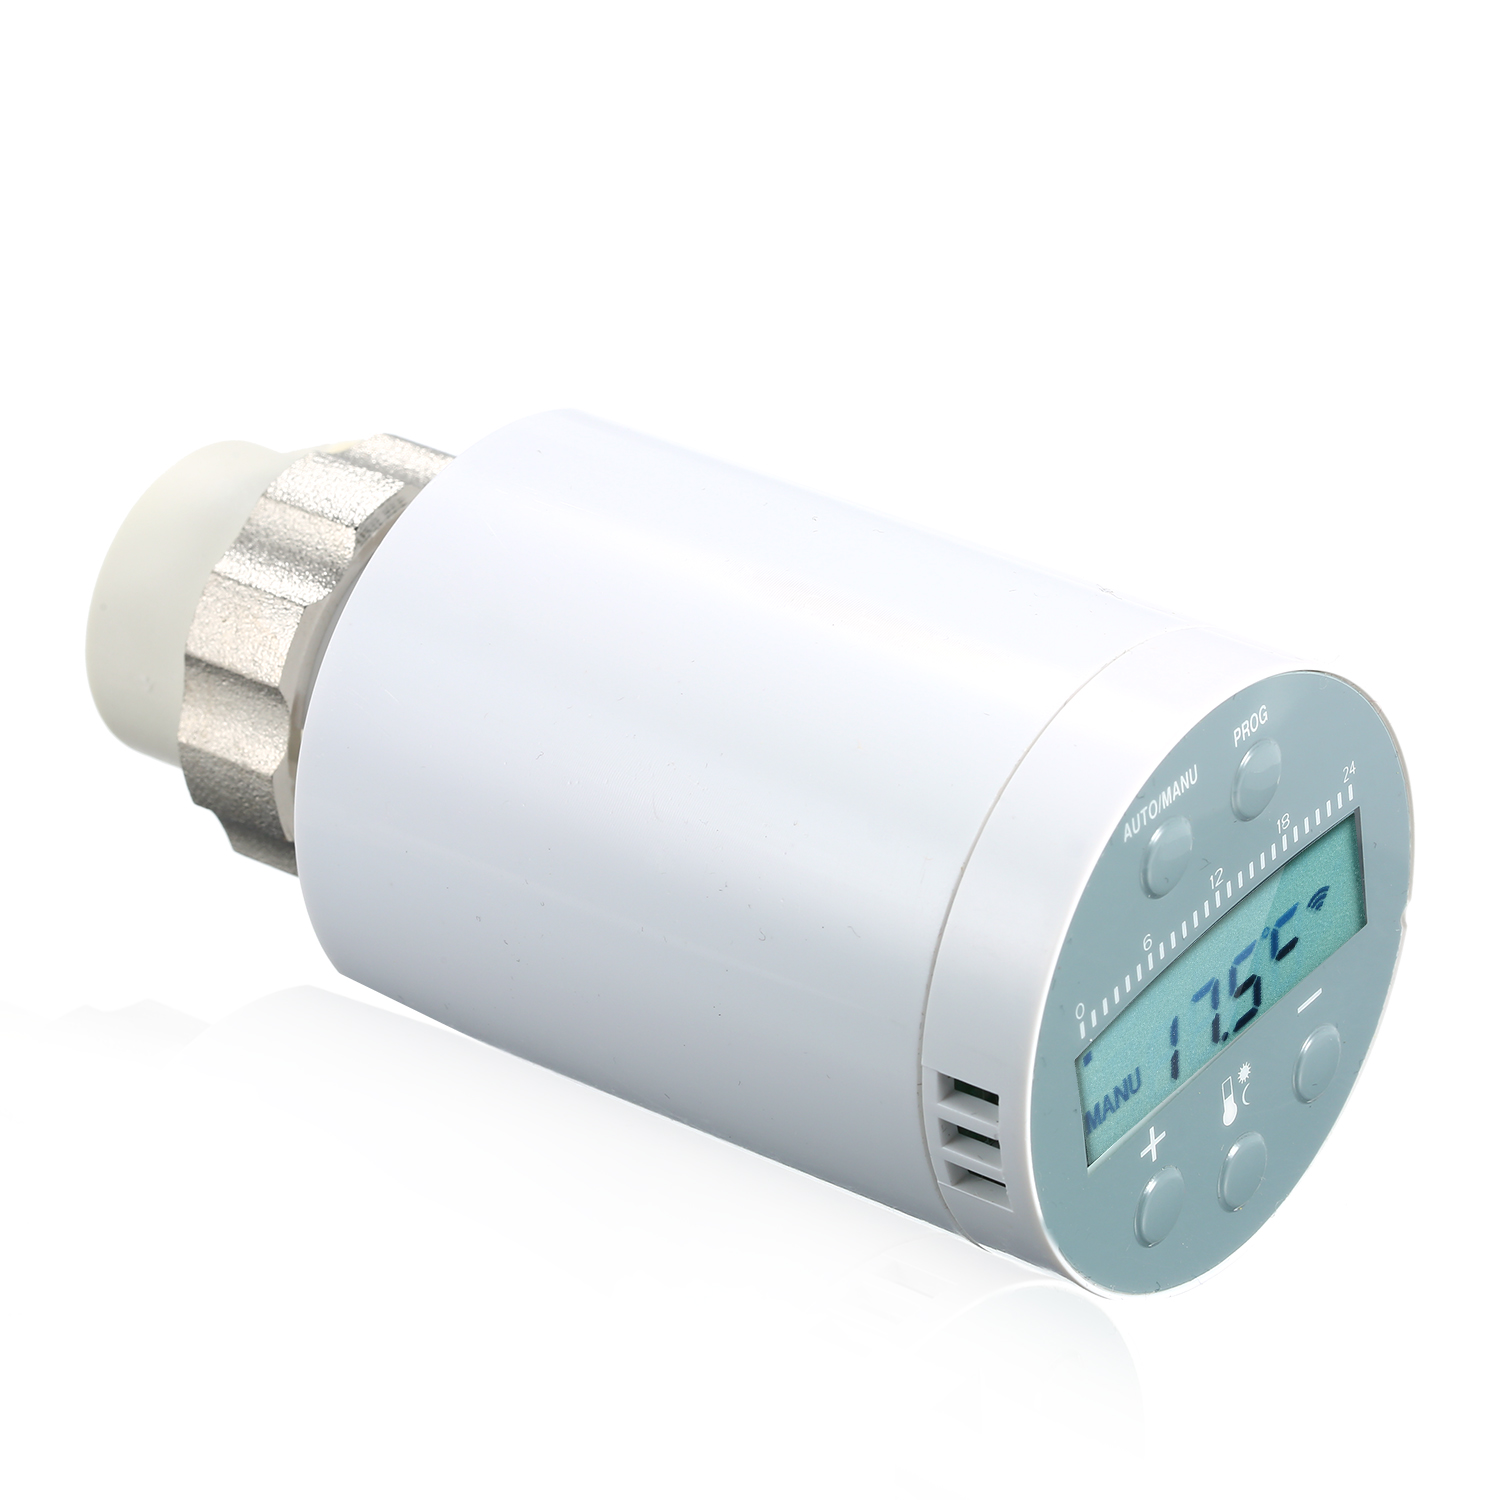 SEA801-APP Thermostat Temperature Controller Heating And Accurate TRV Thermostatic Radiator Valve Programmable Voice Controller